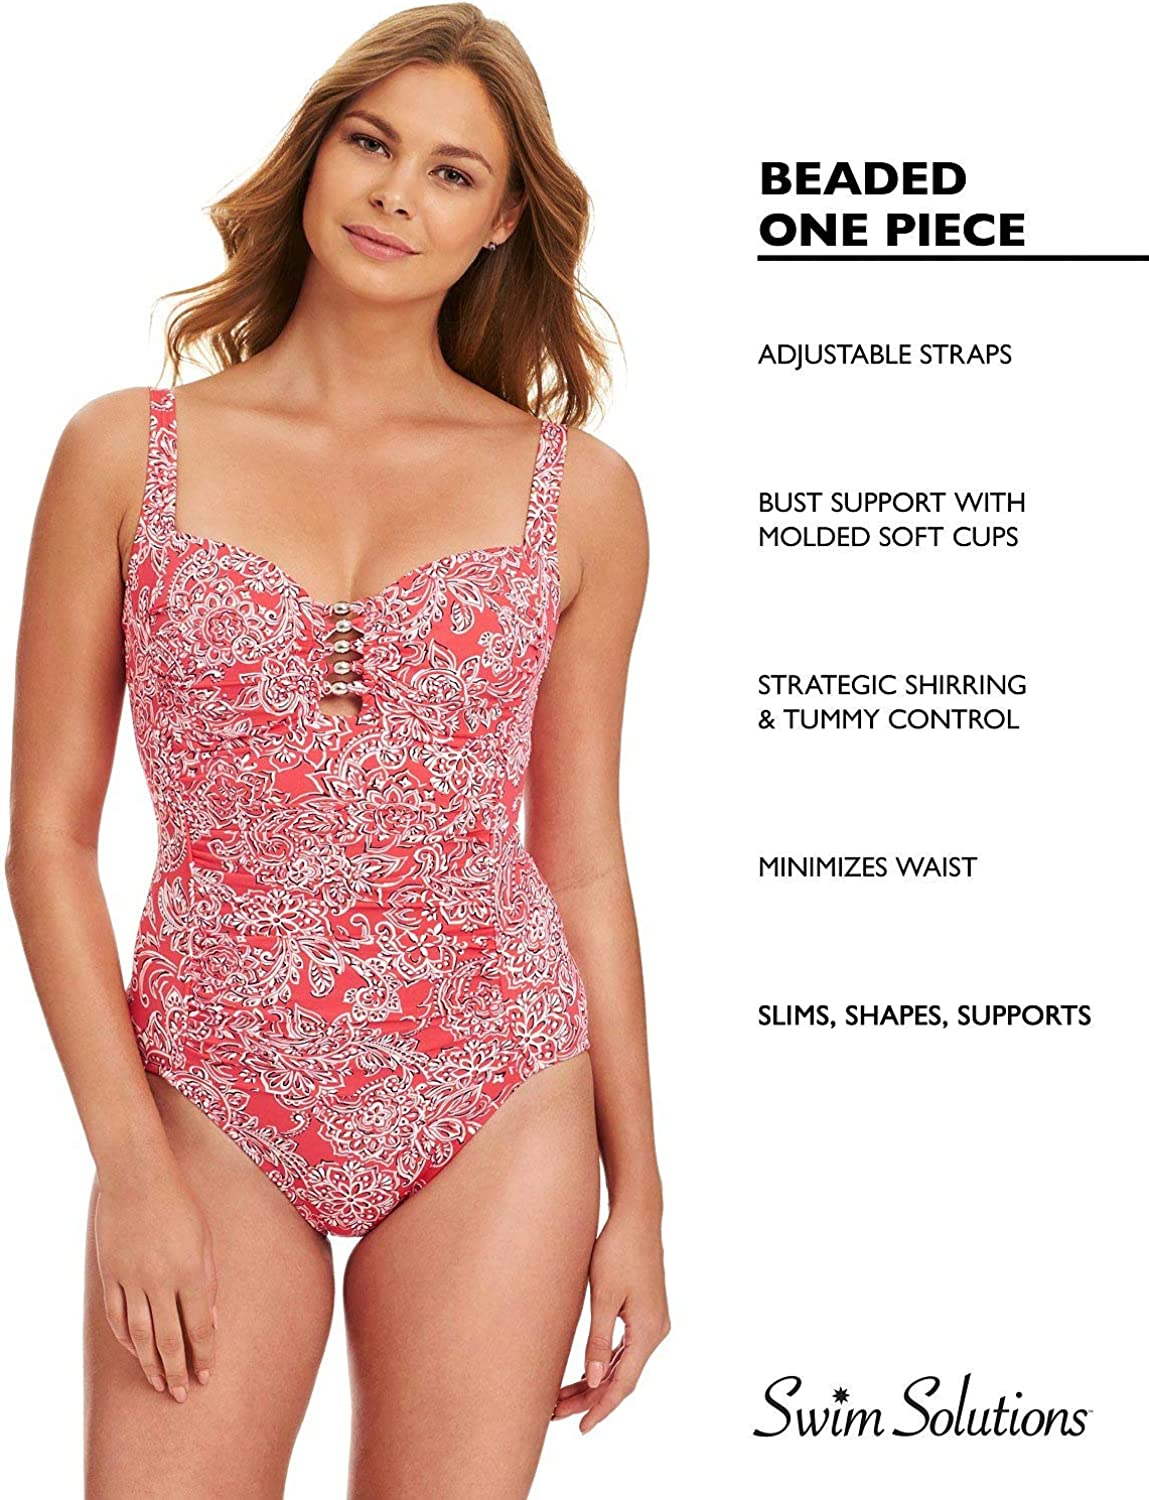 Swim Solutions Tummy-Control Beaded One-Piece Swimsuit Coral Size 8